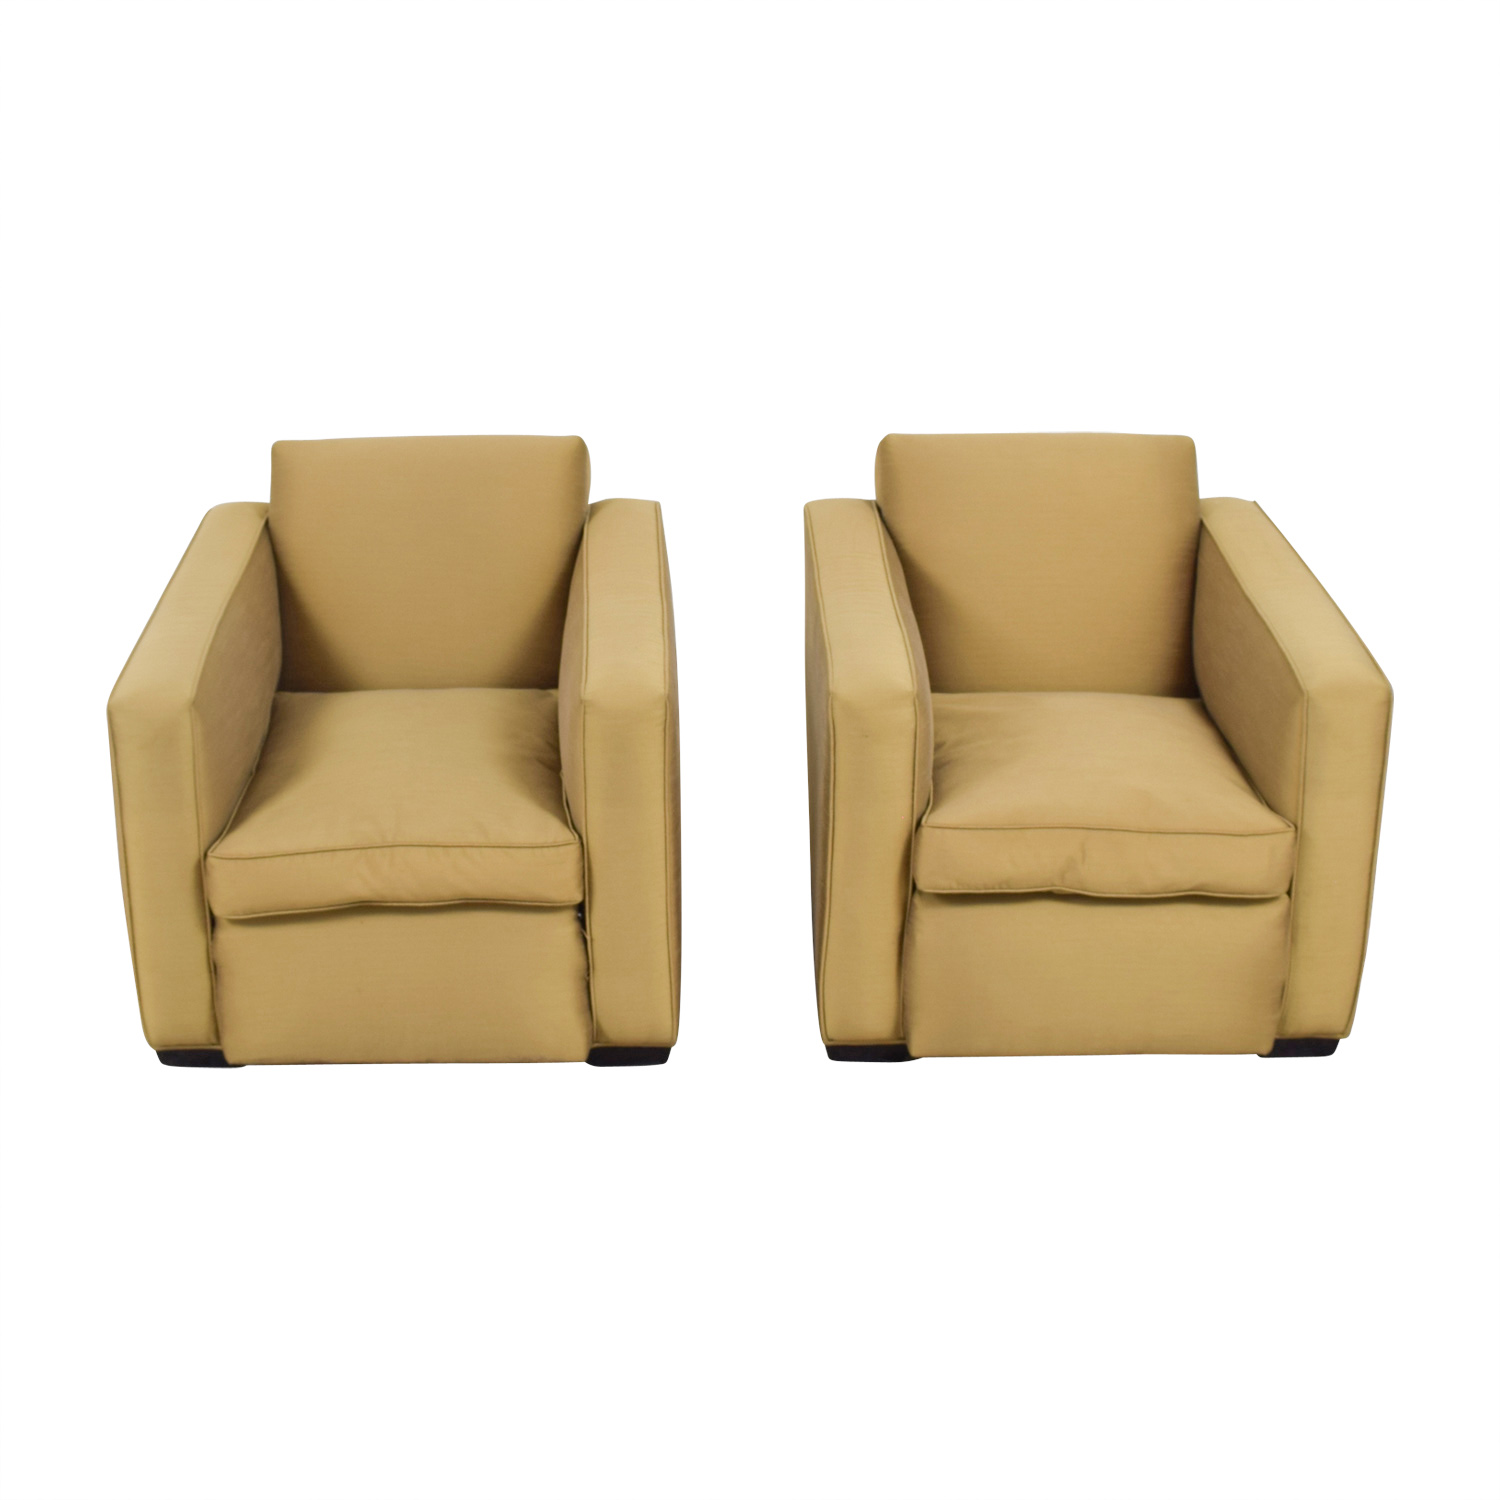 Paul J Sommerville Design Inc Gold Accent Chairs / Sofas